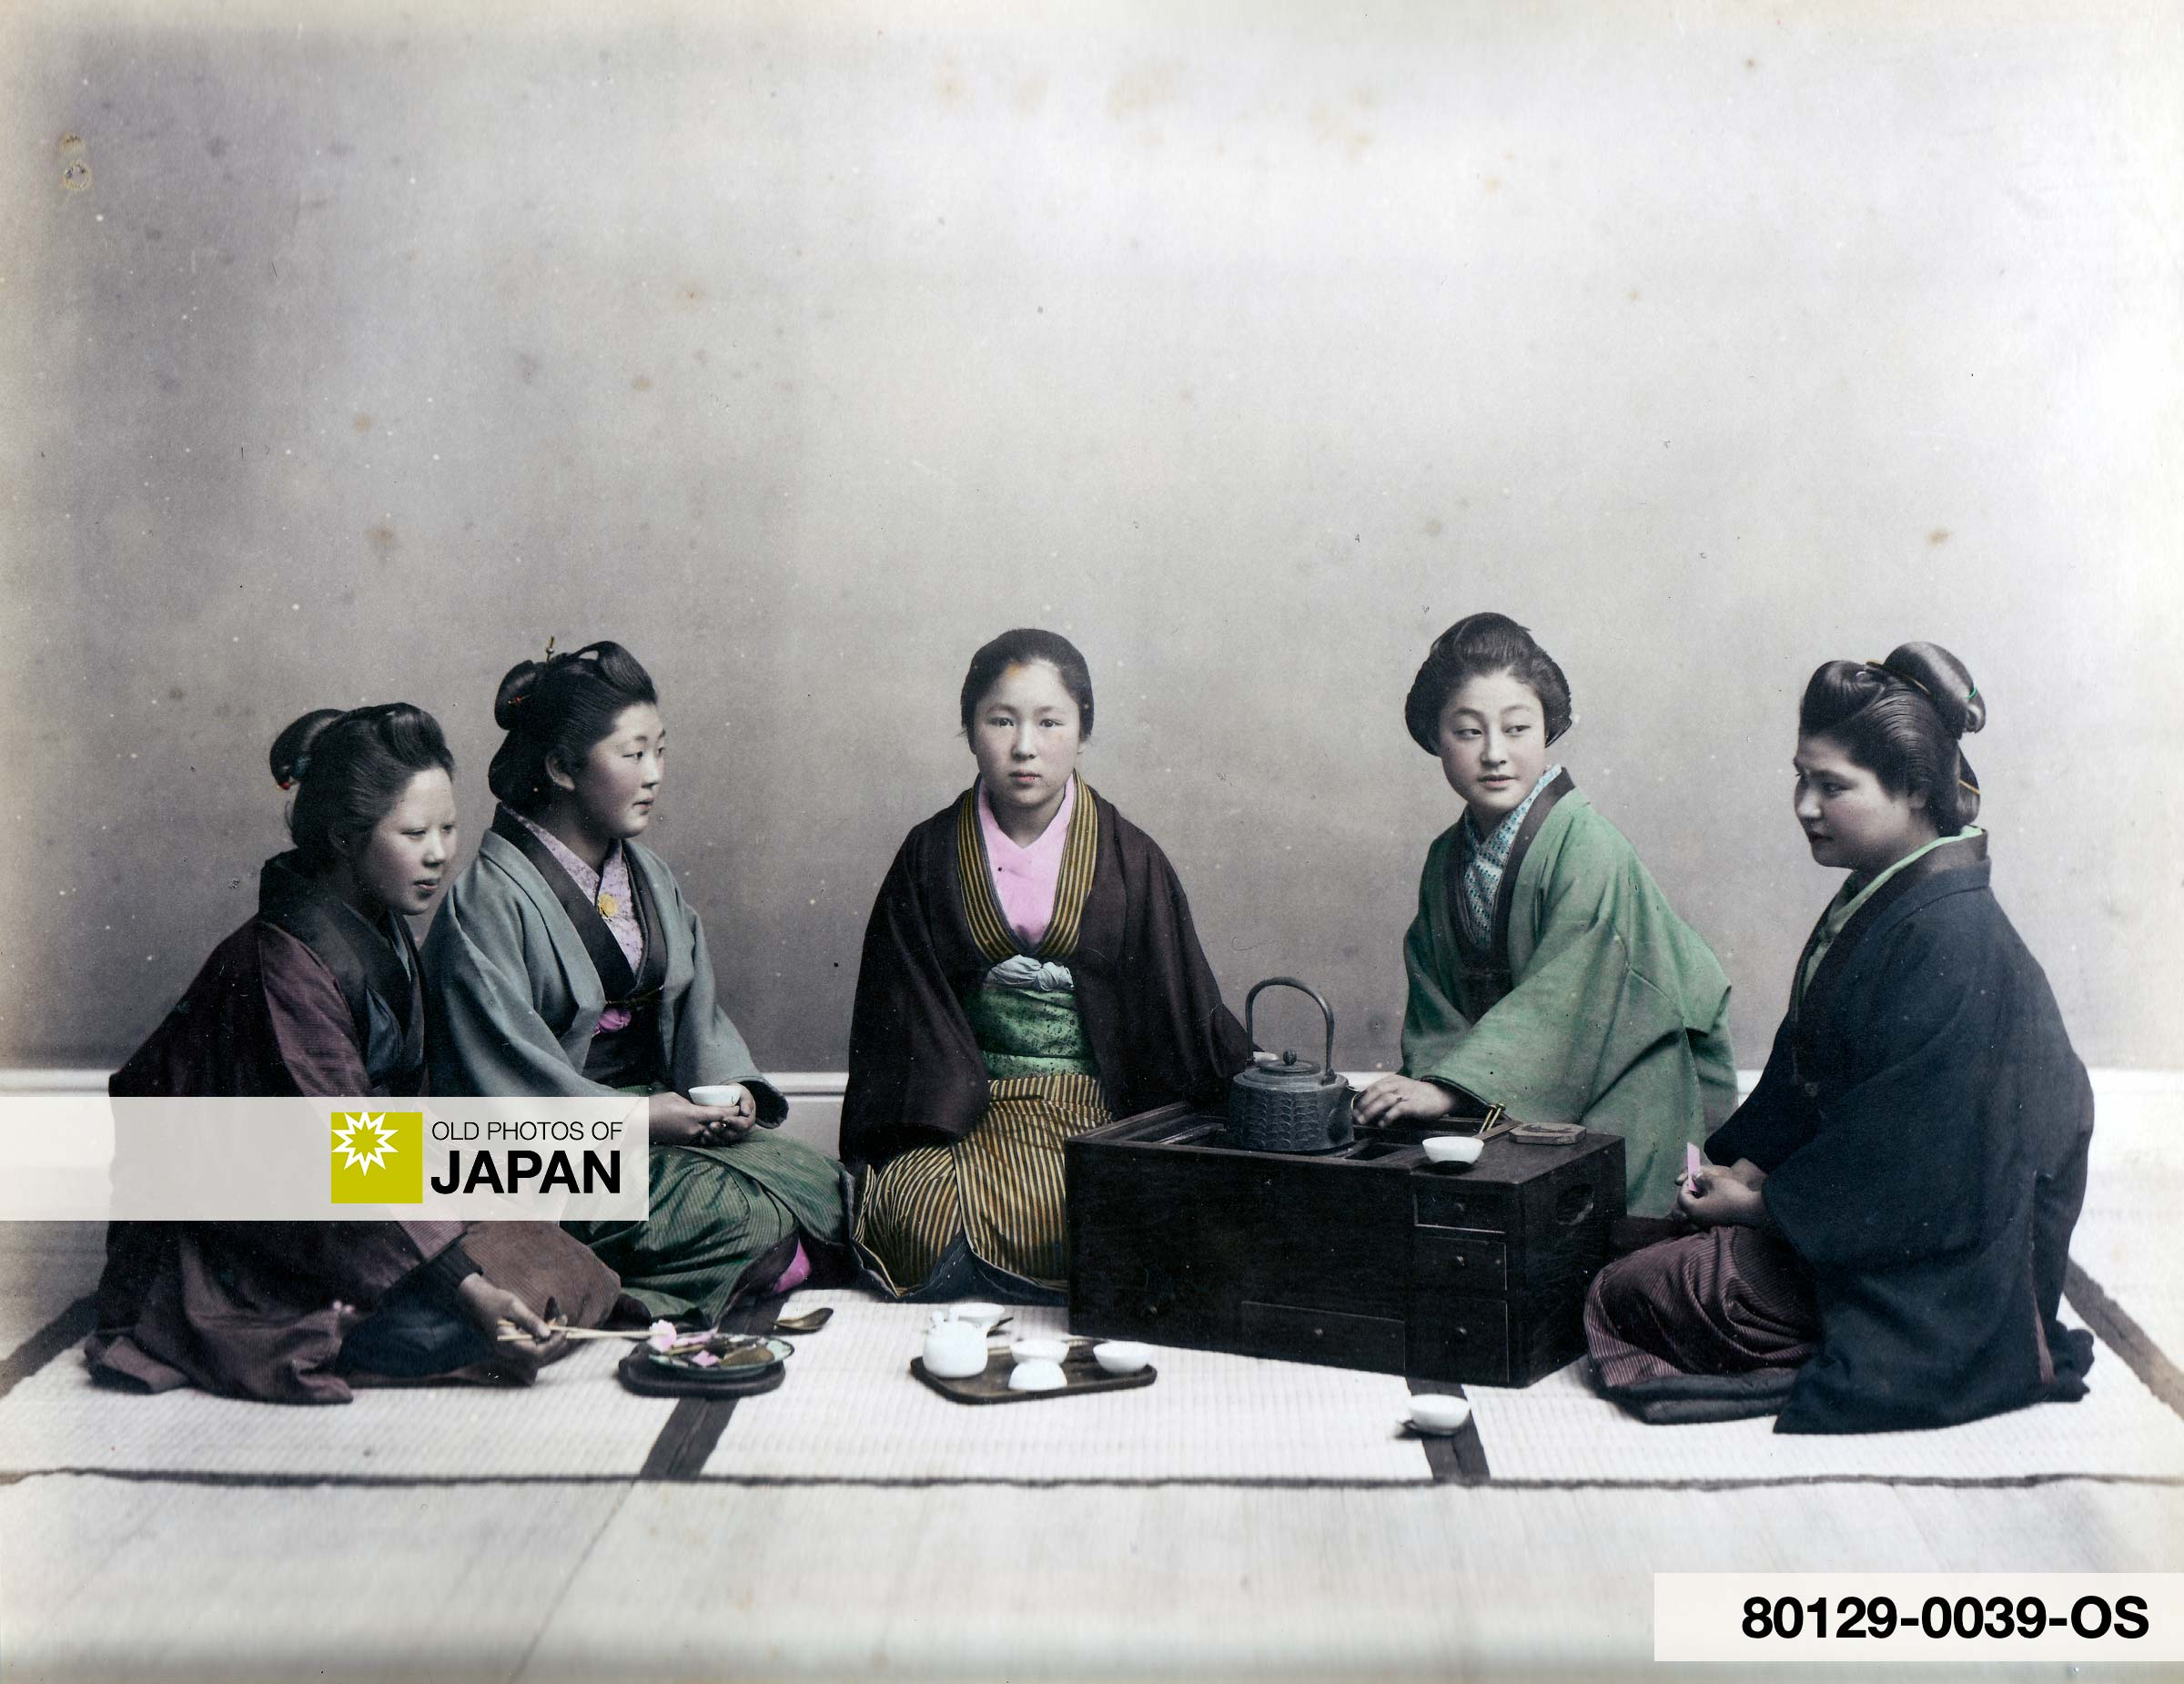 Women in Kimono Having Tea